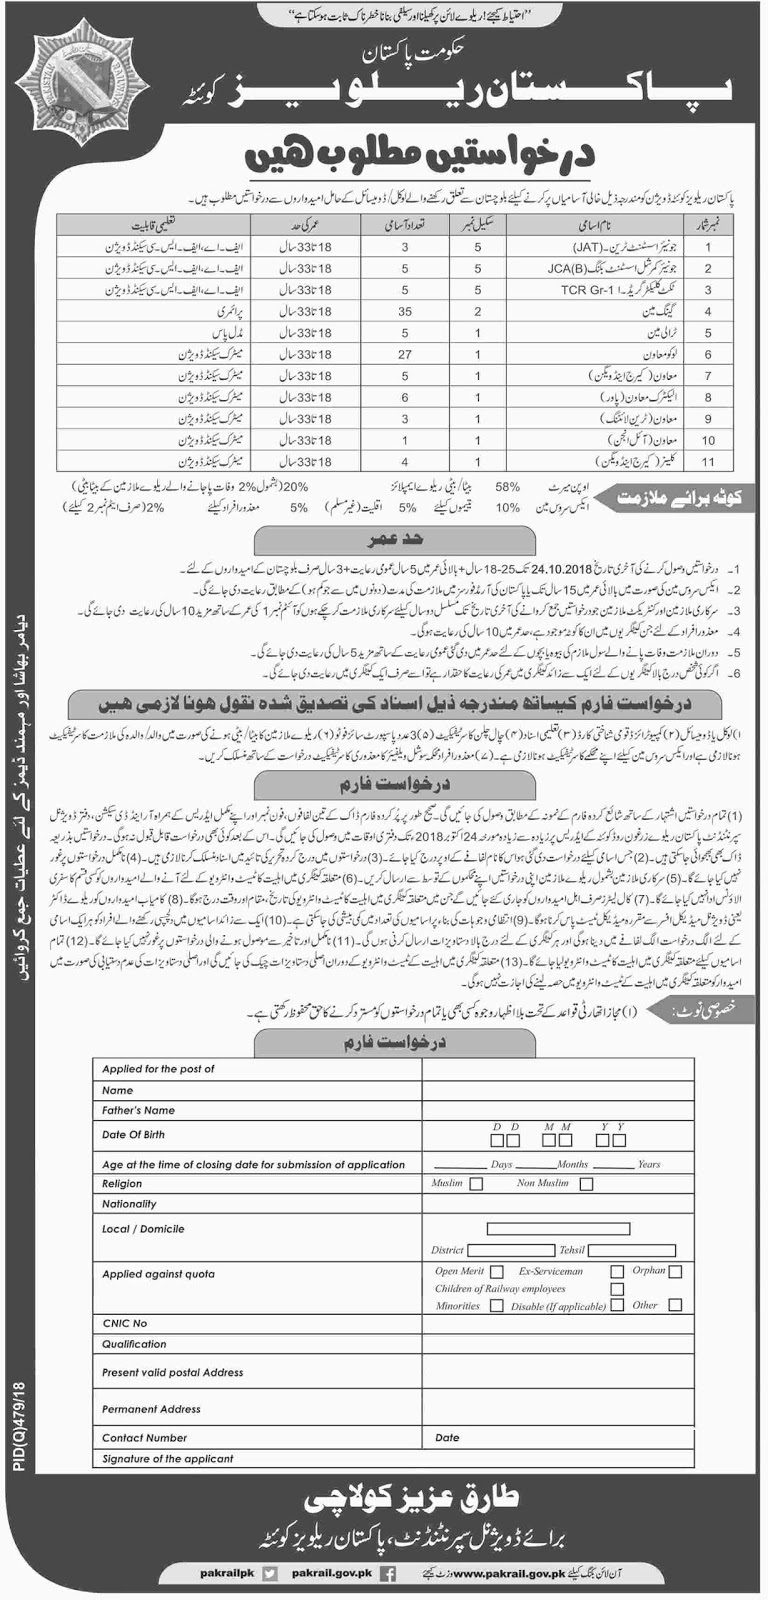 Latest Vacancies Announced in Pakistan Railways Quetta Division 4 October 2018 - Naya Pakistan